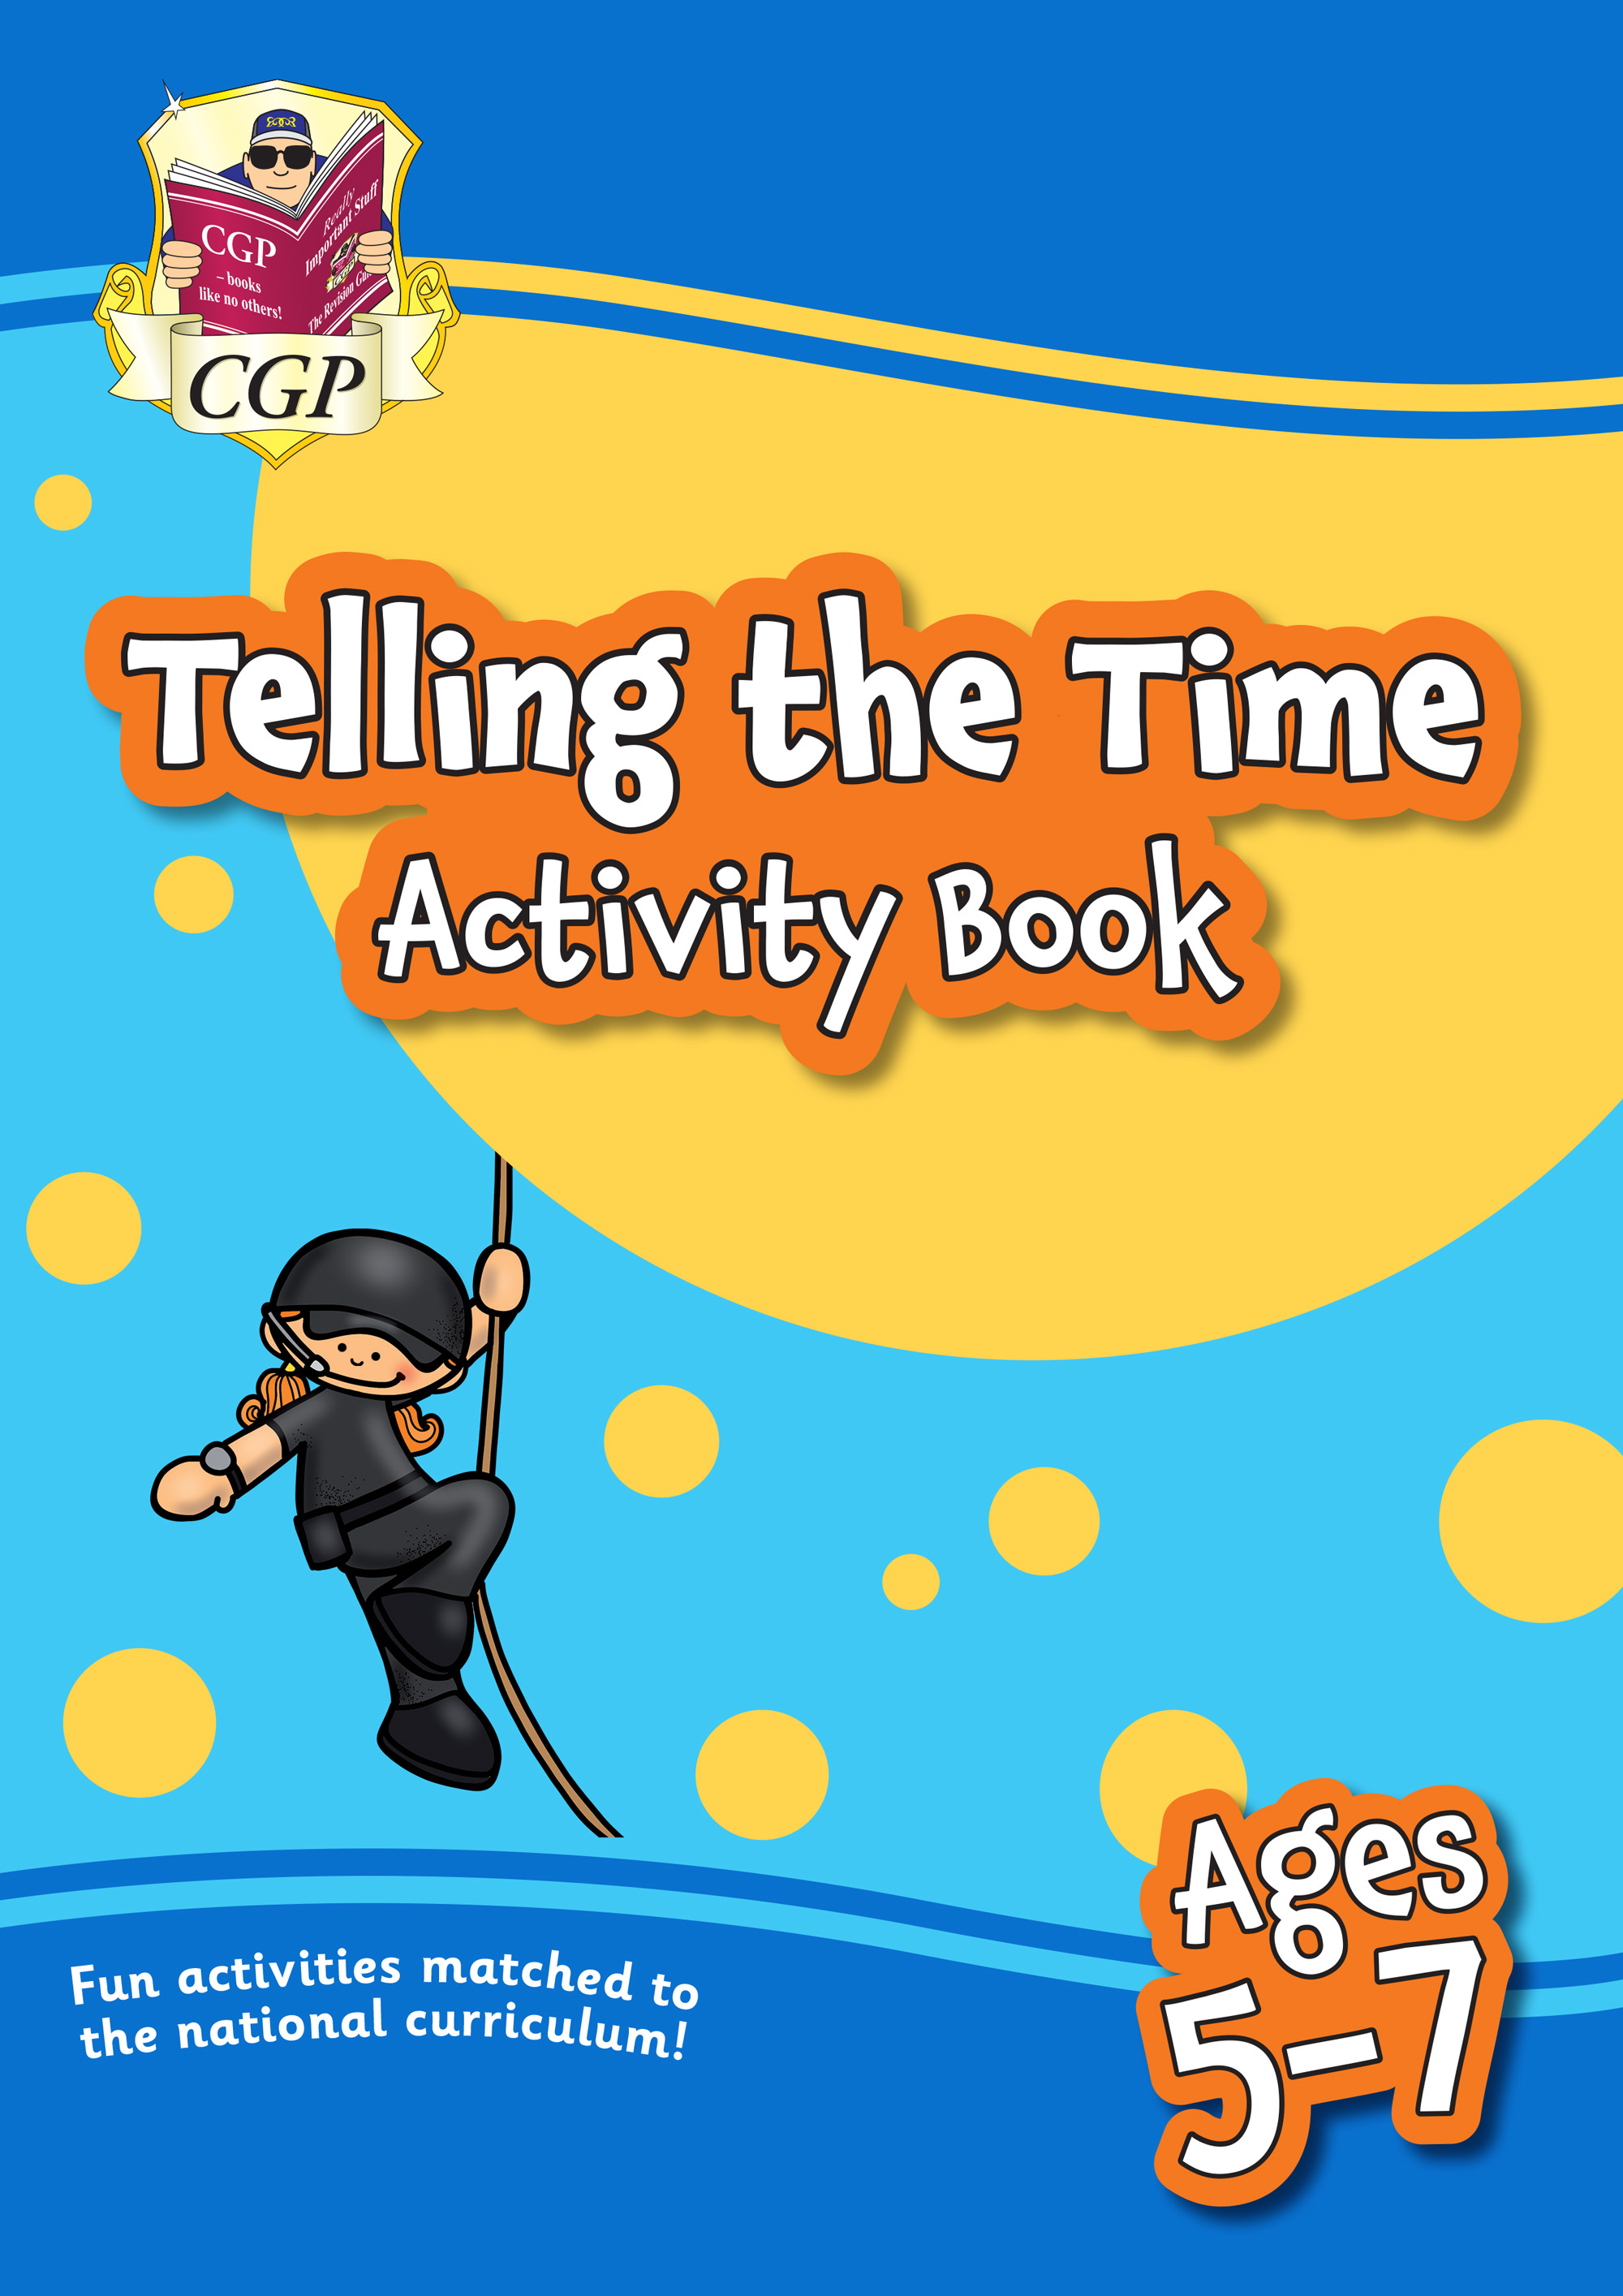 MPFTI11 - New Telling the Time Activity Book for Ages 5-7: perfect for home learning